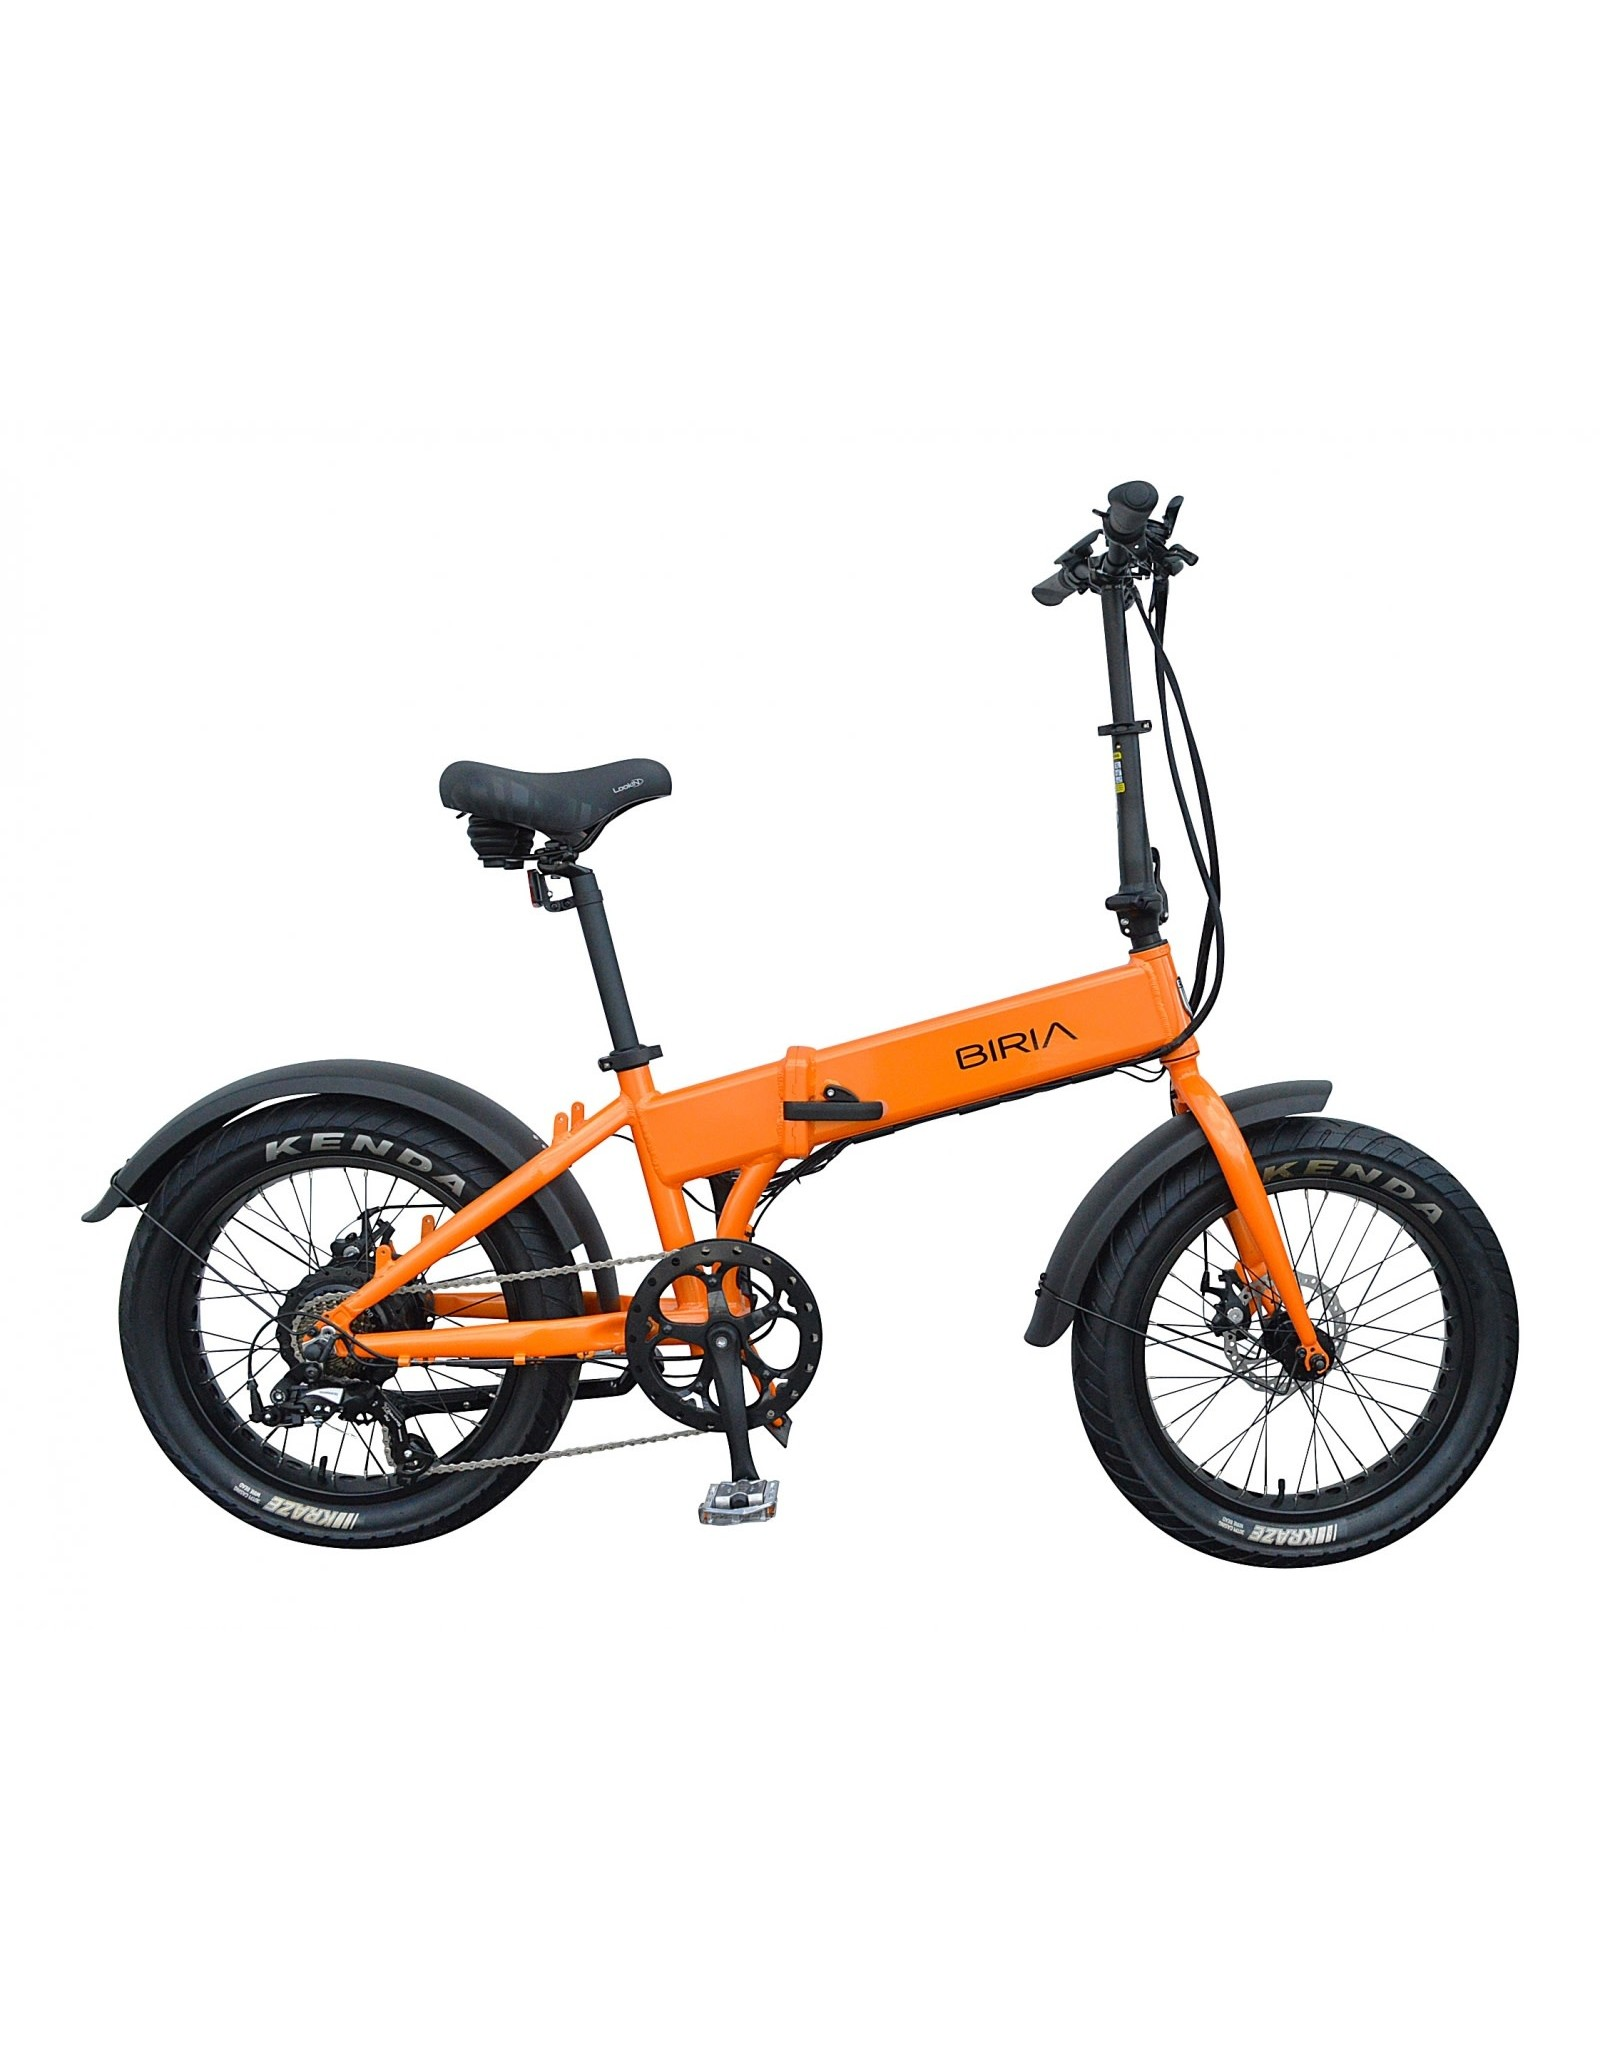 Folding Bmx Bike : folding, Biria, Electric, Folding, Providence, Bicycle